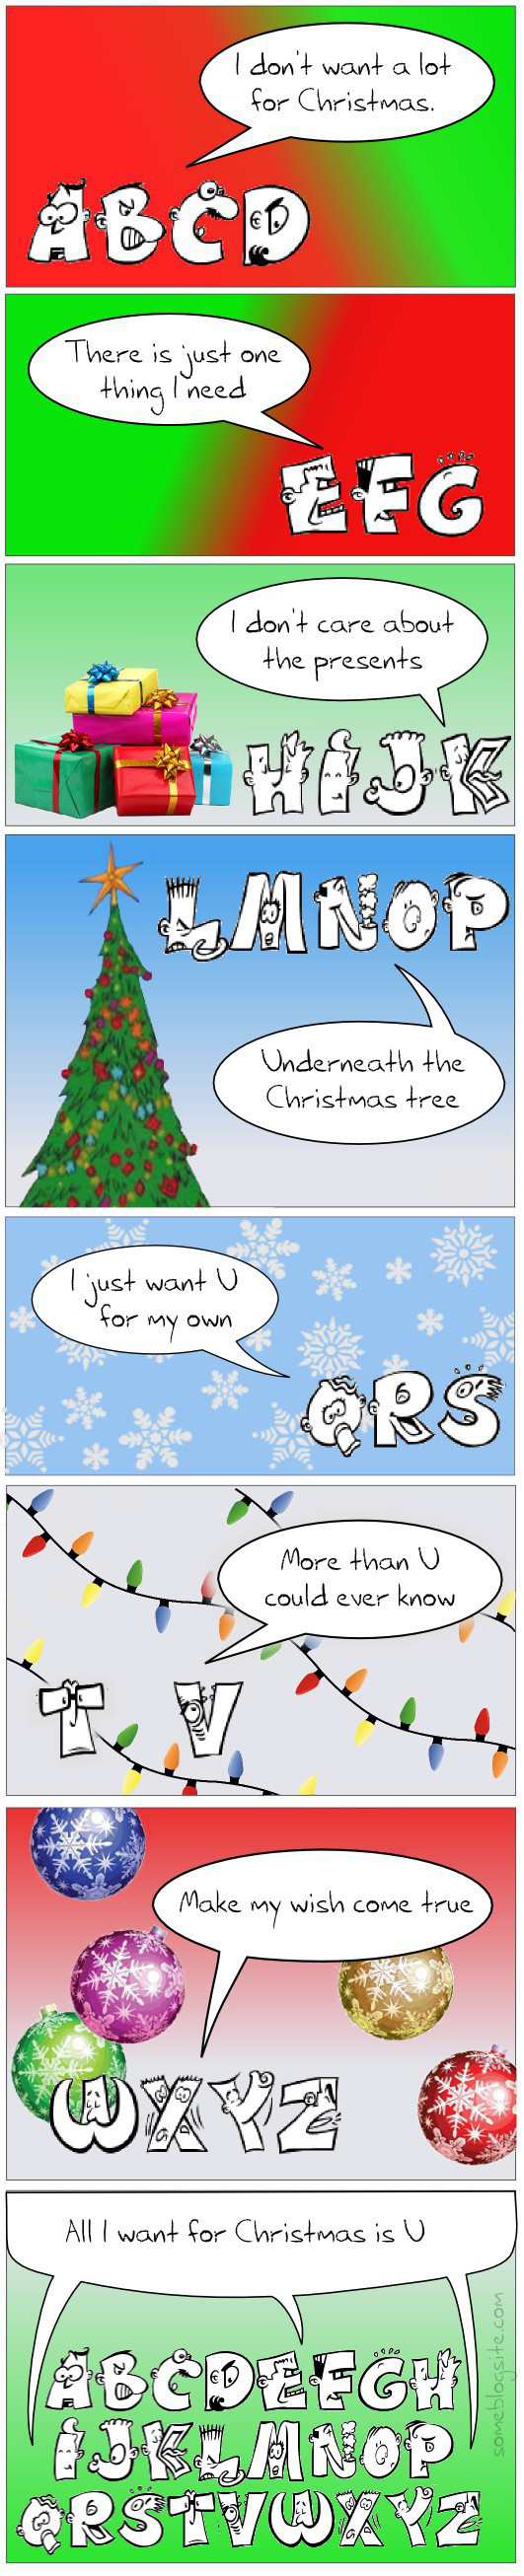 comic of an alphabet singing Mariah Carey's 'All I Want for Christmas is You' but with the letter U instead of the word you